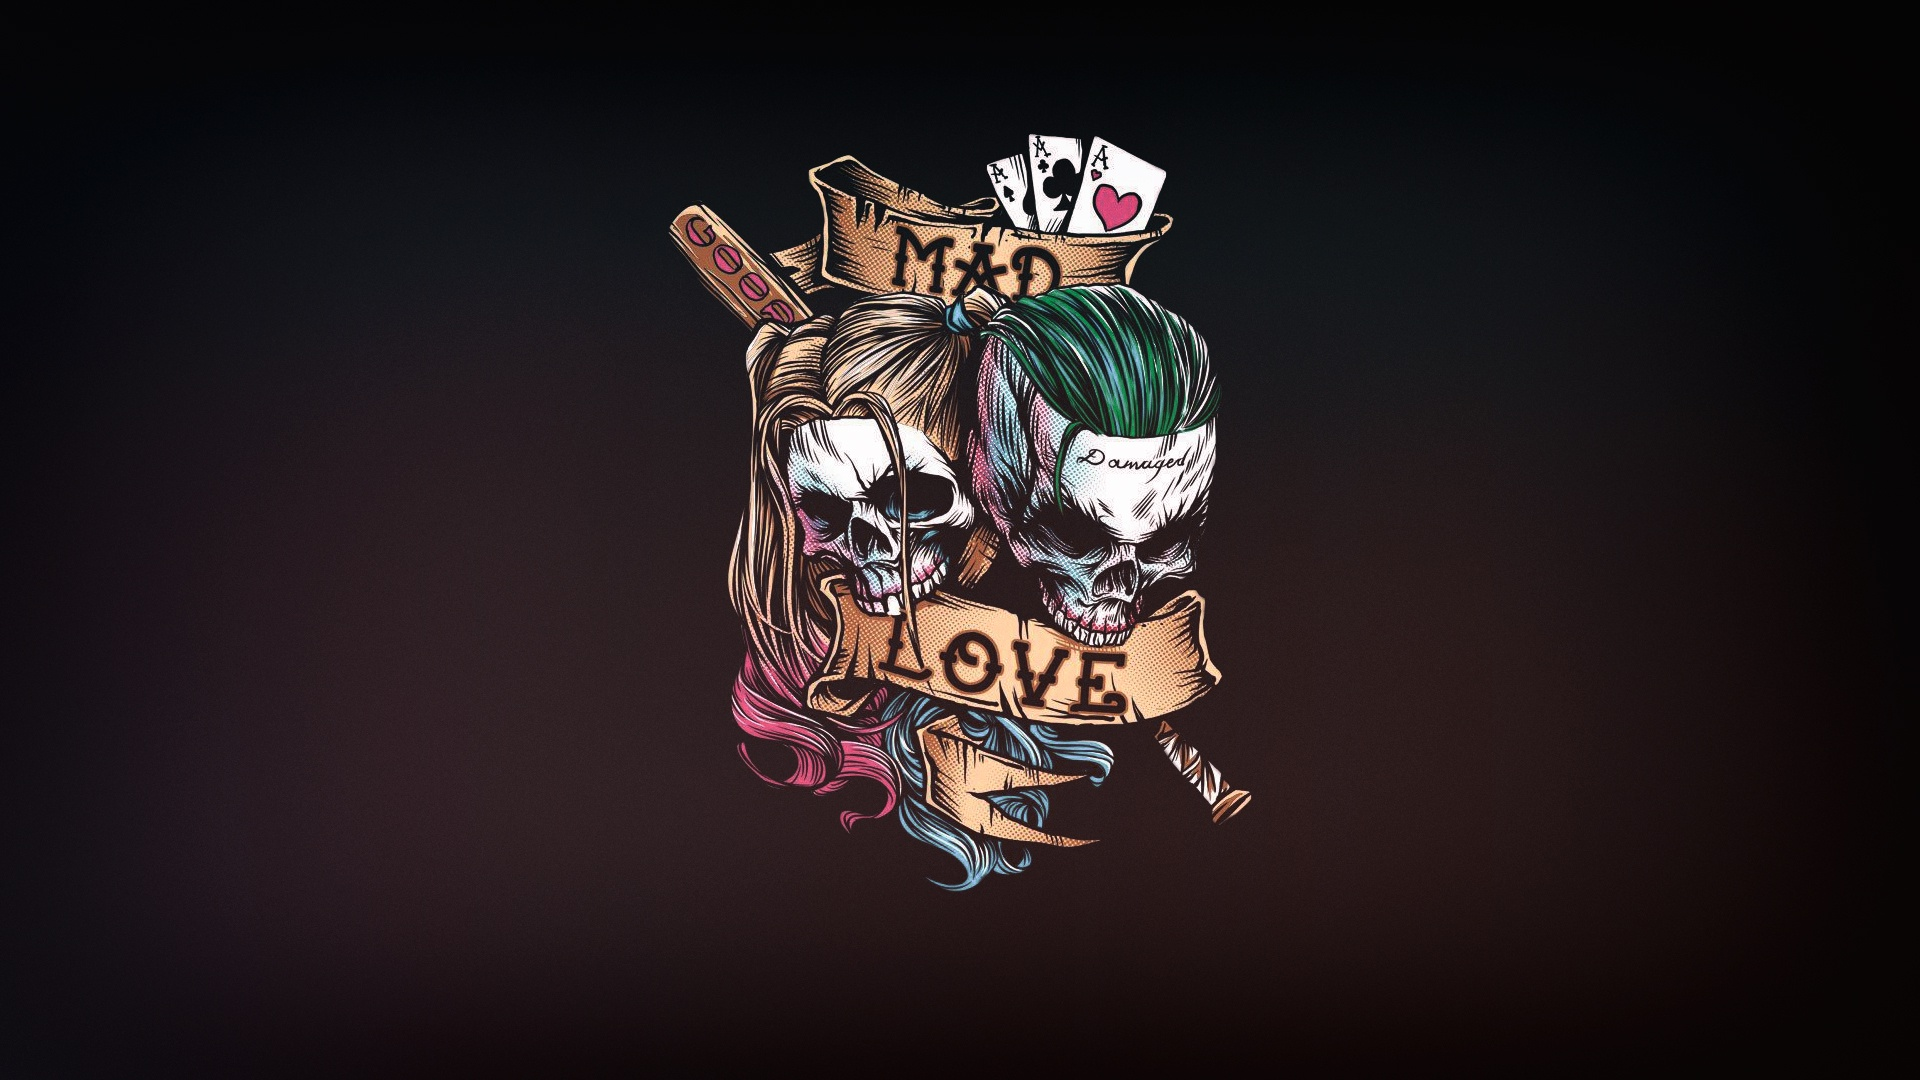 General 1920x1080 love artwork simple background skull bones Joker Harley Quinn